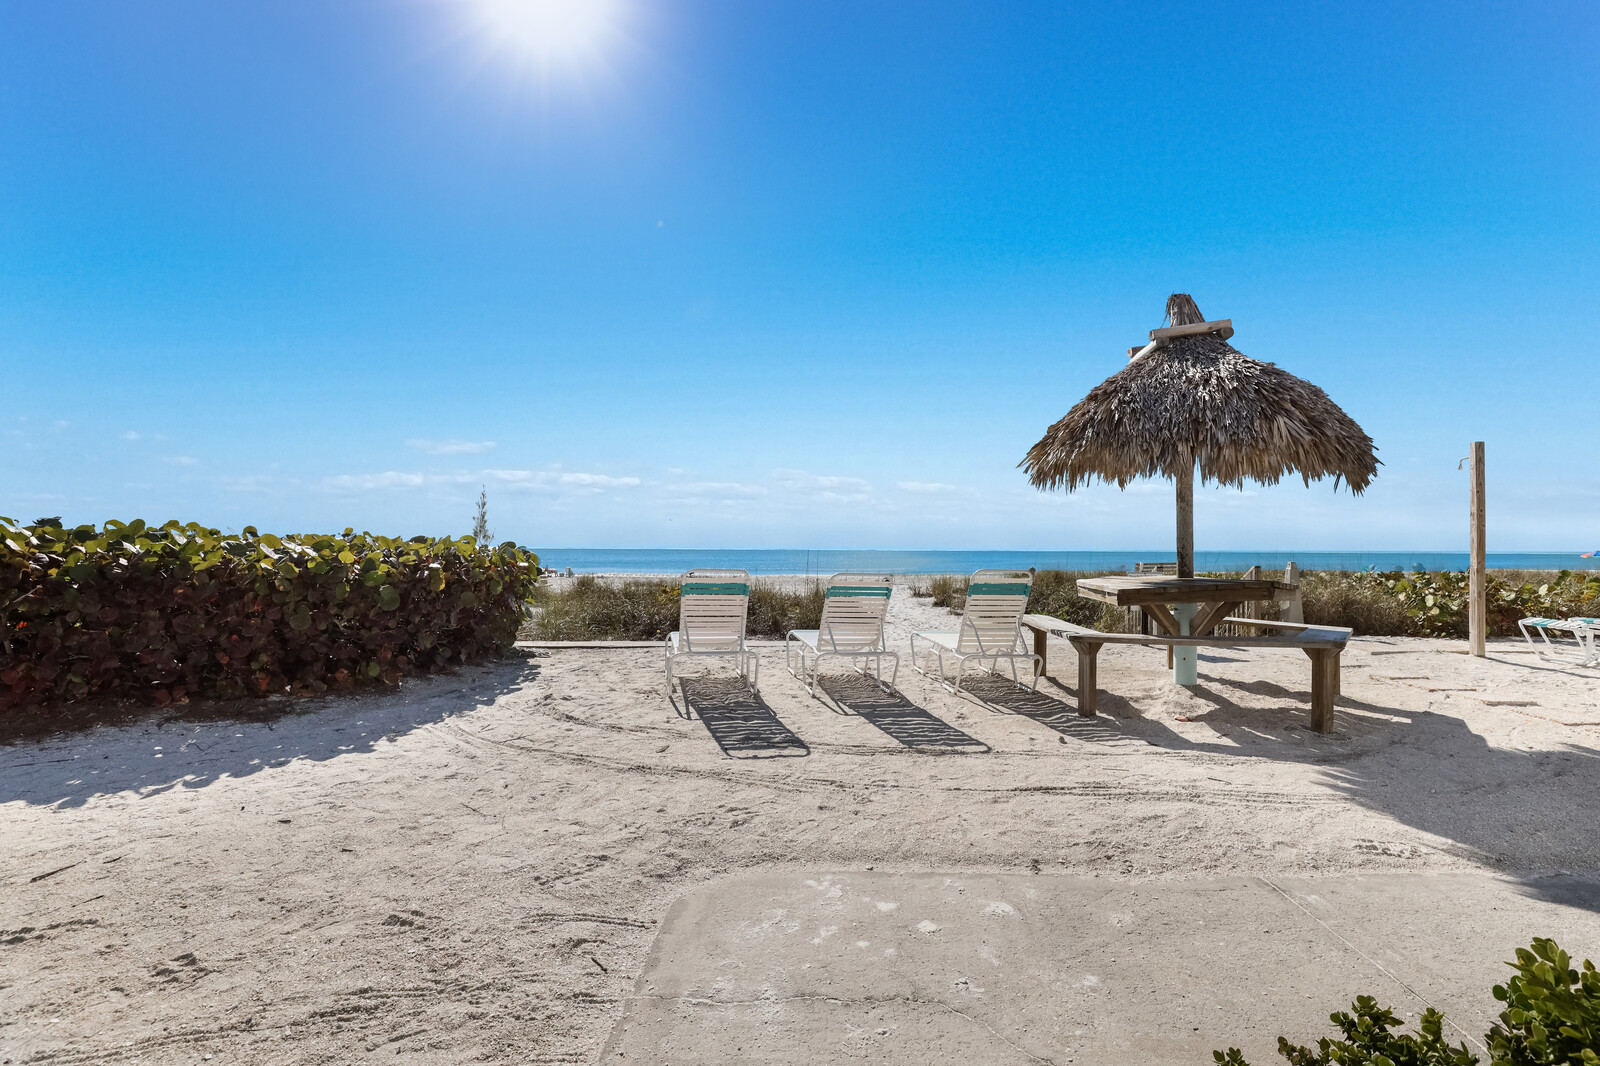 Beach access with loungers